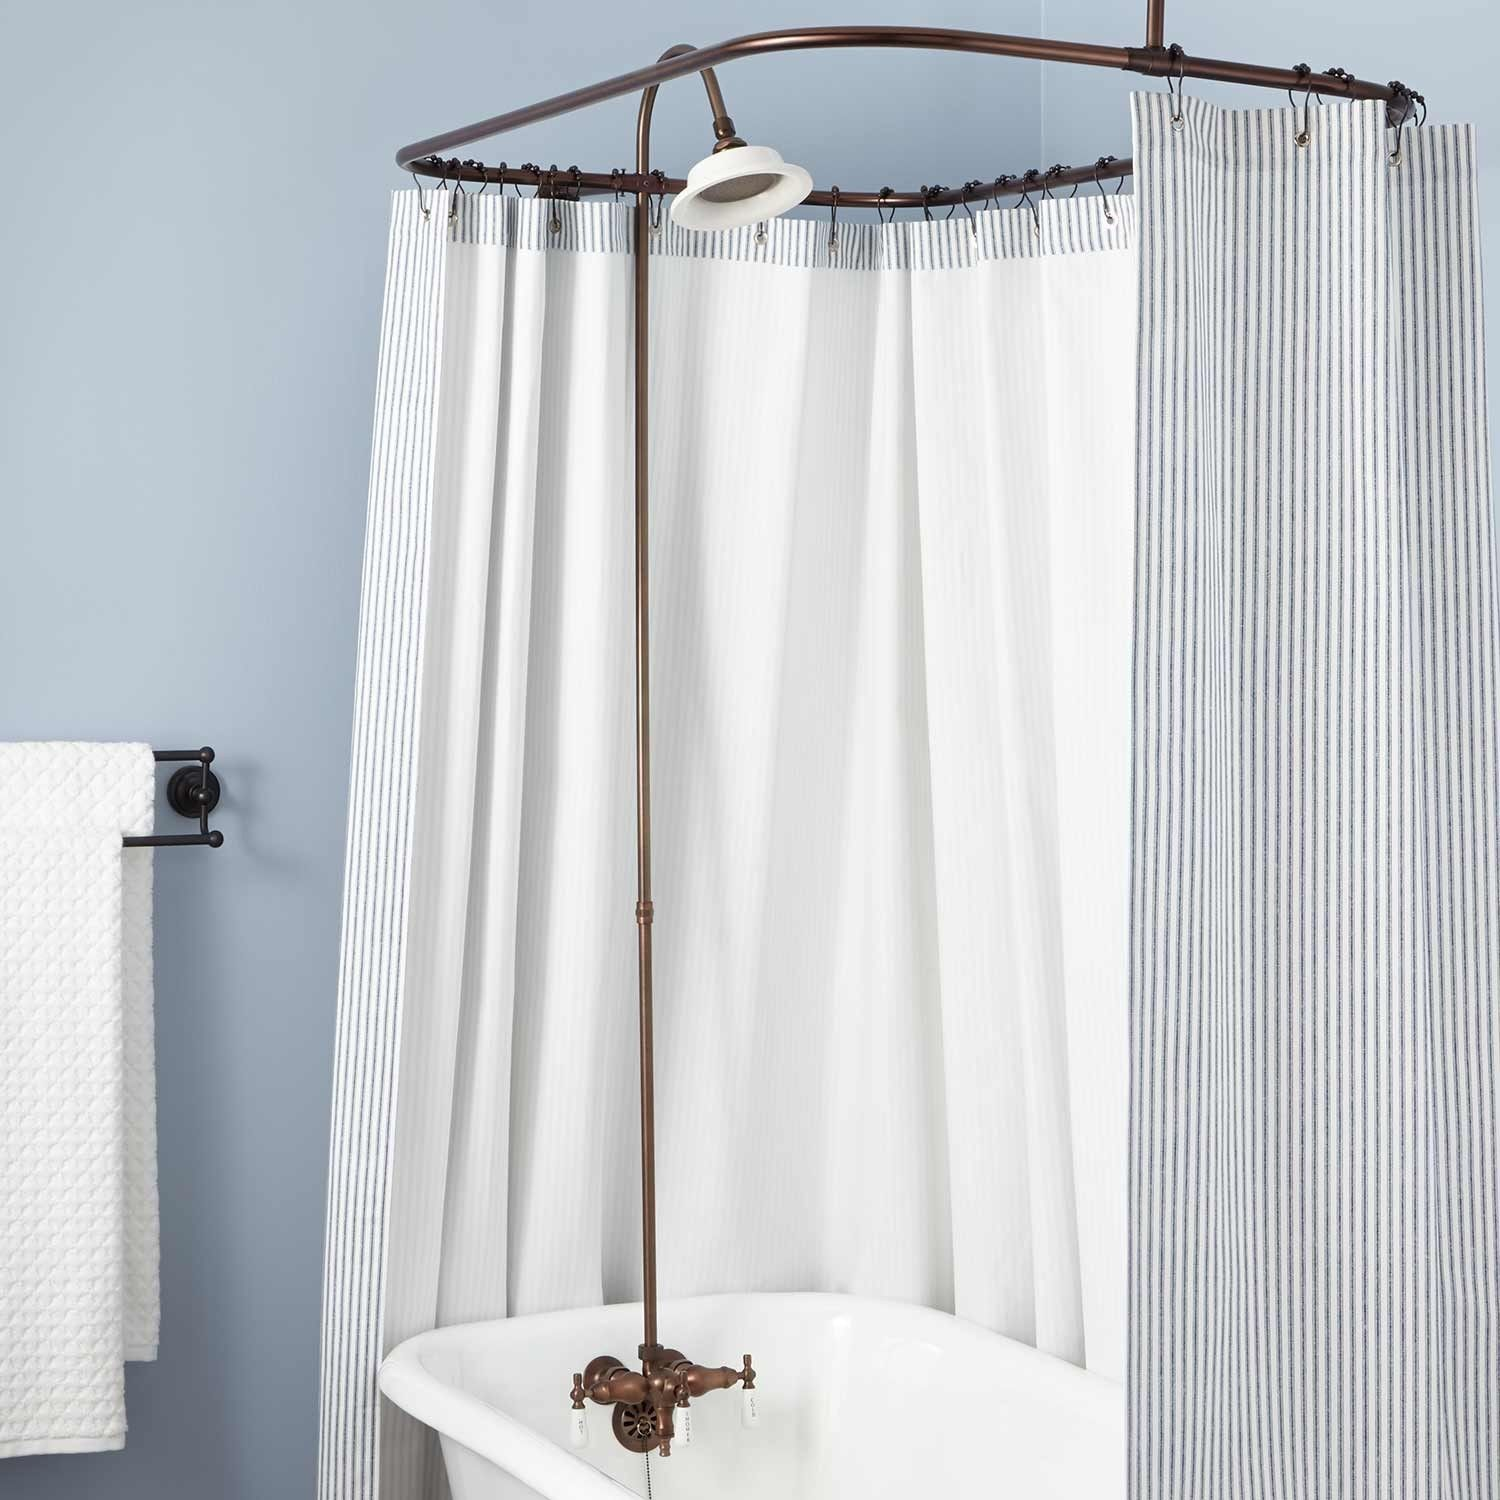 Clawfoot Tub Solid Brass Shower Conversion Kit Fabric Shower Curtains Clawfoot Tub Shower Shower Conversion